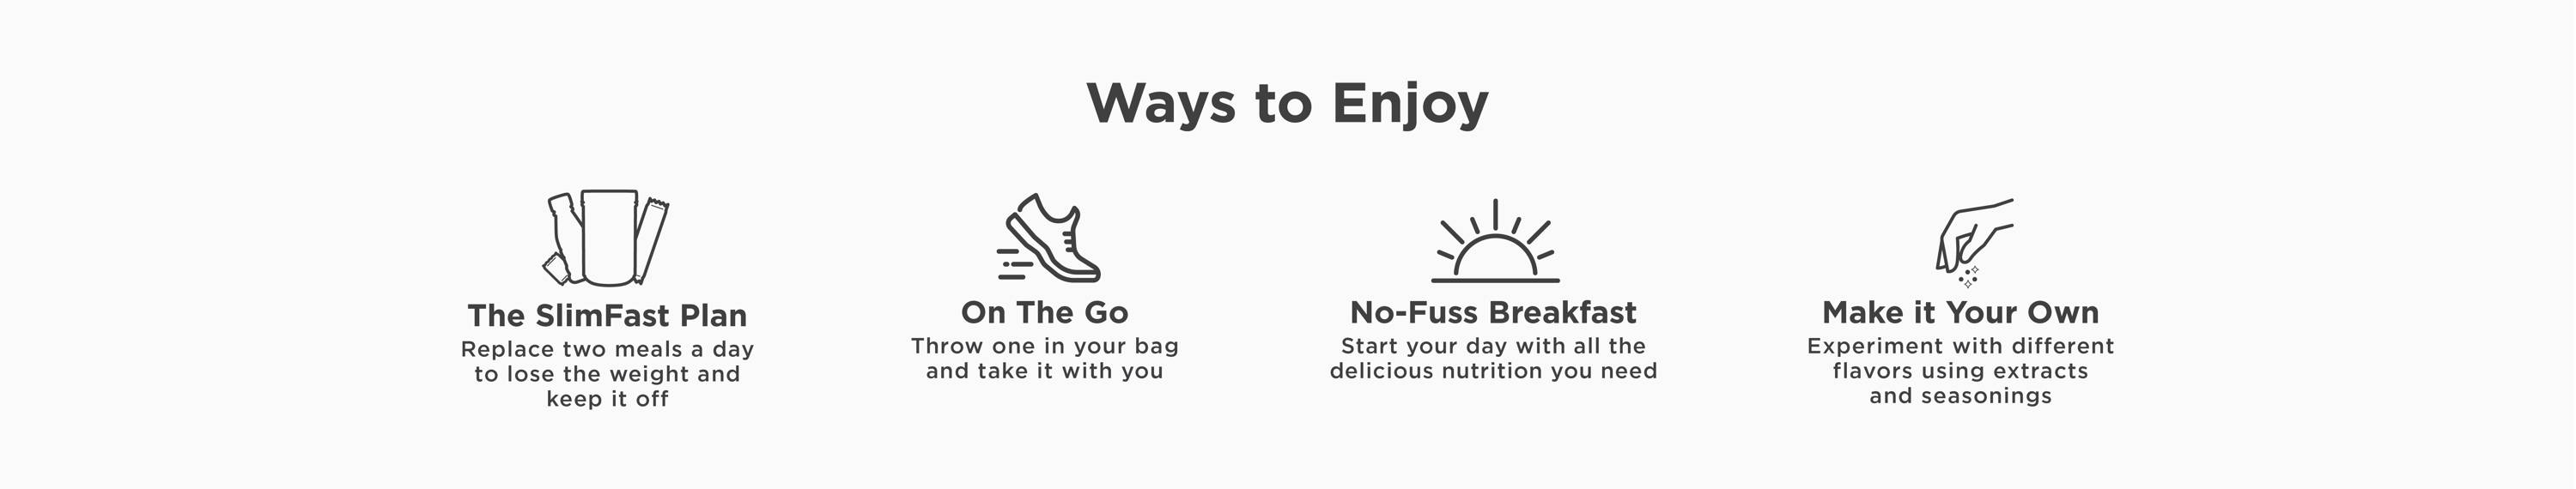 Ways to enjoy Advanced Nutrition Shakes: Use them on the SlimFast plan, take them on the go, have a no-fuss breakfast, or make it your own